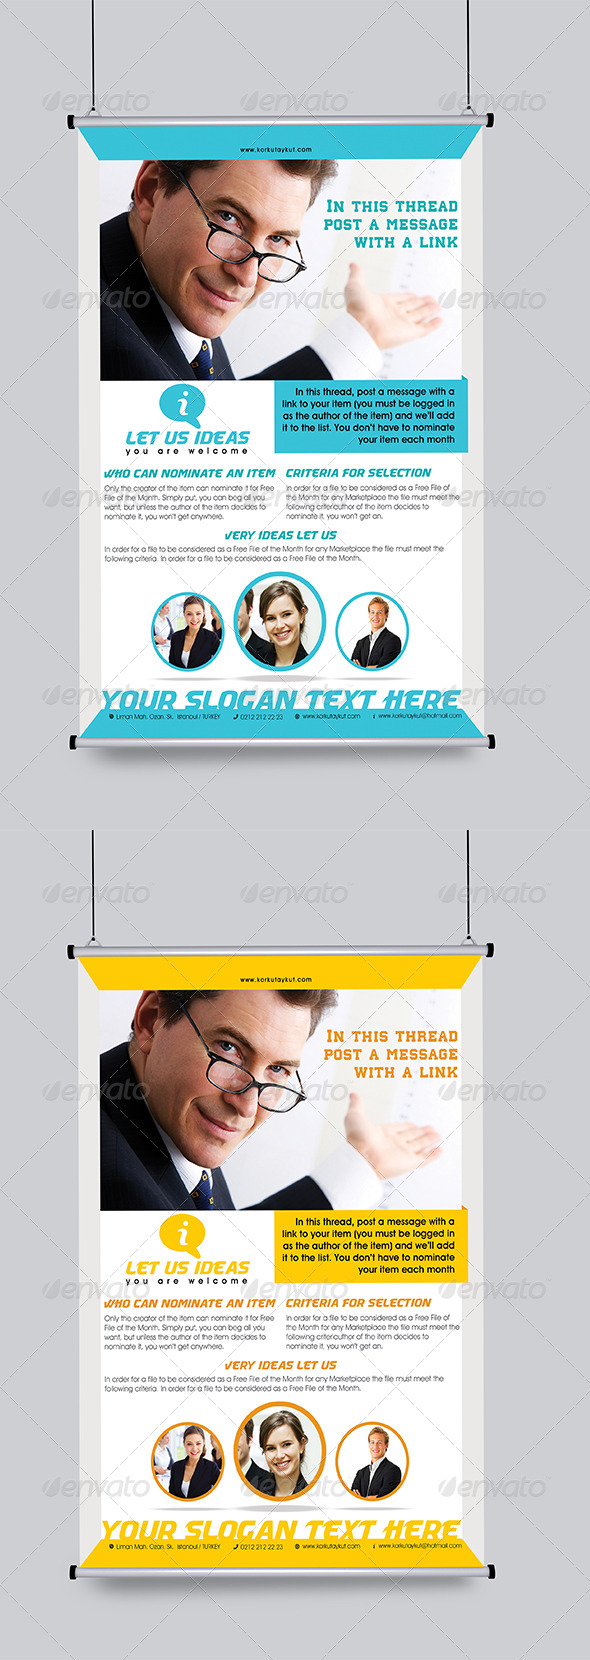 Let Us Ideas Flyer Template - Corporate Flyers